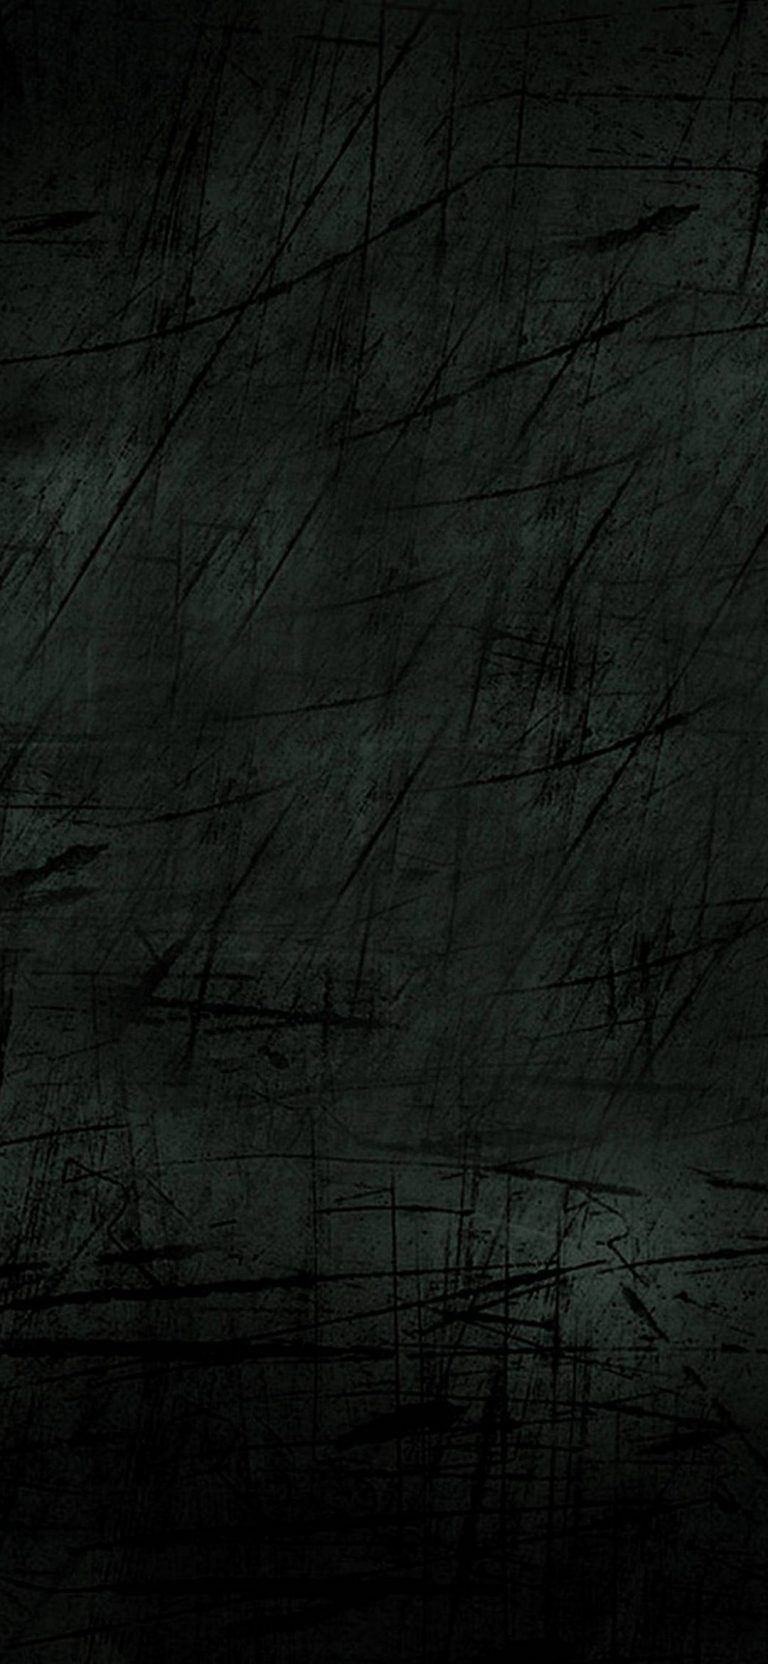 Dark Phone Wallpaper 005 1080x2340 768x1664